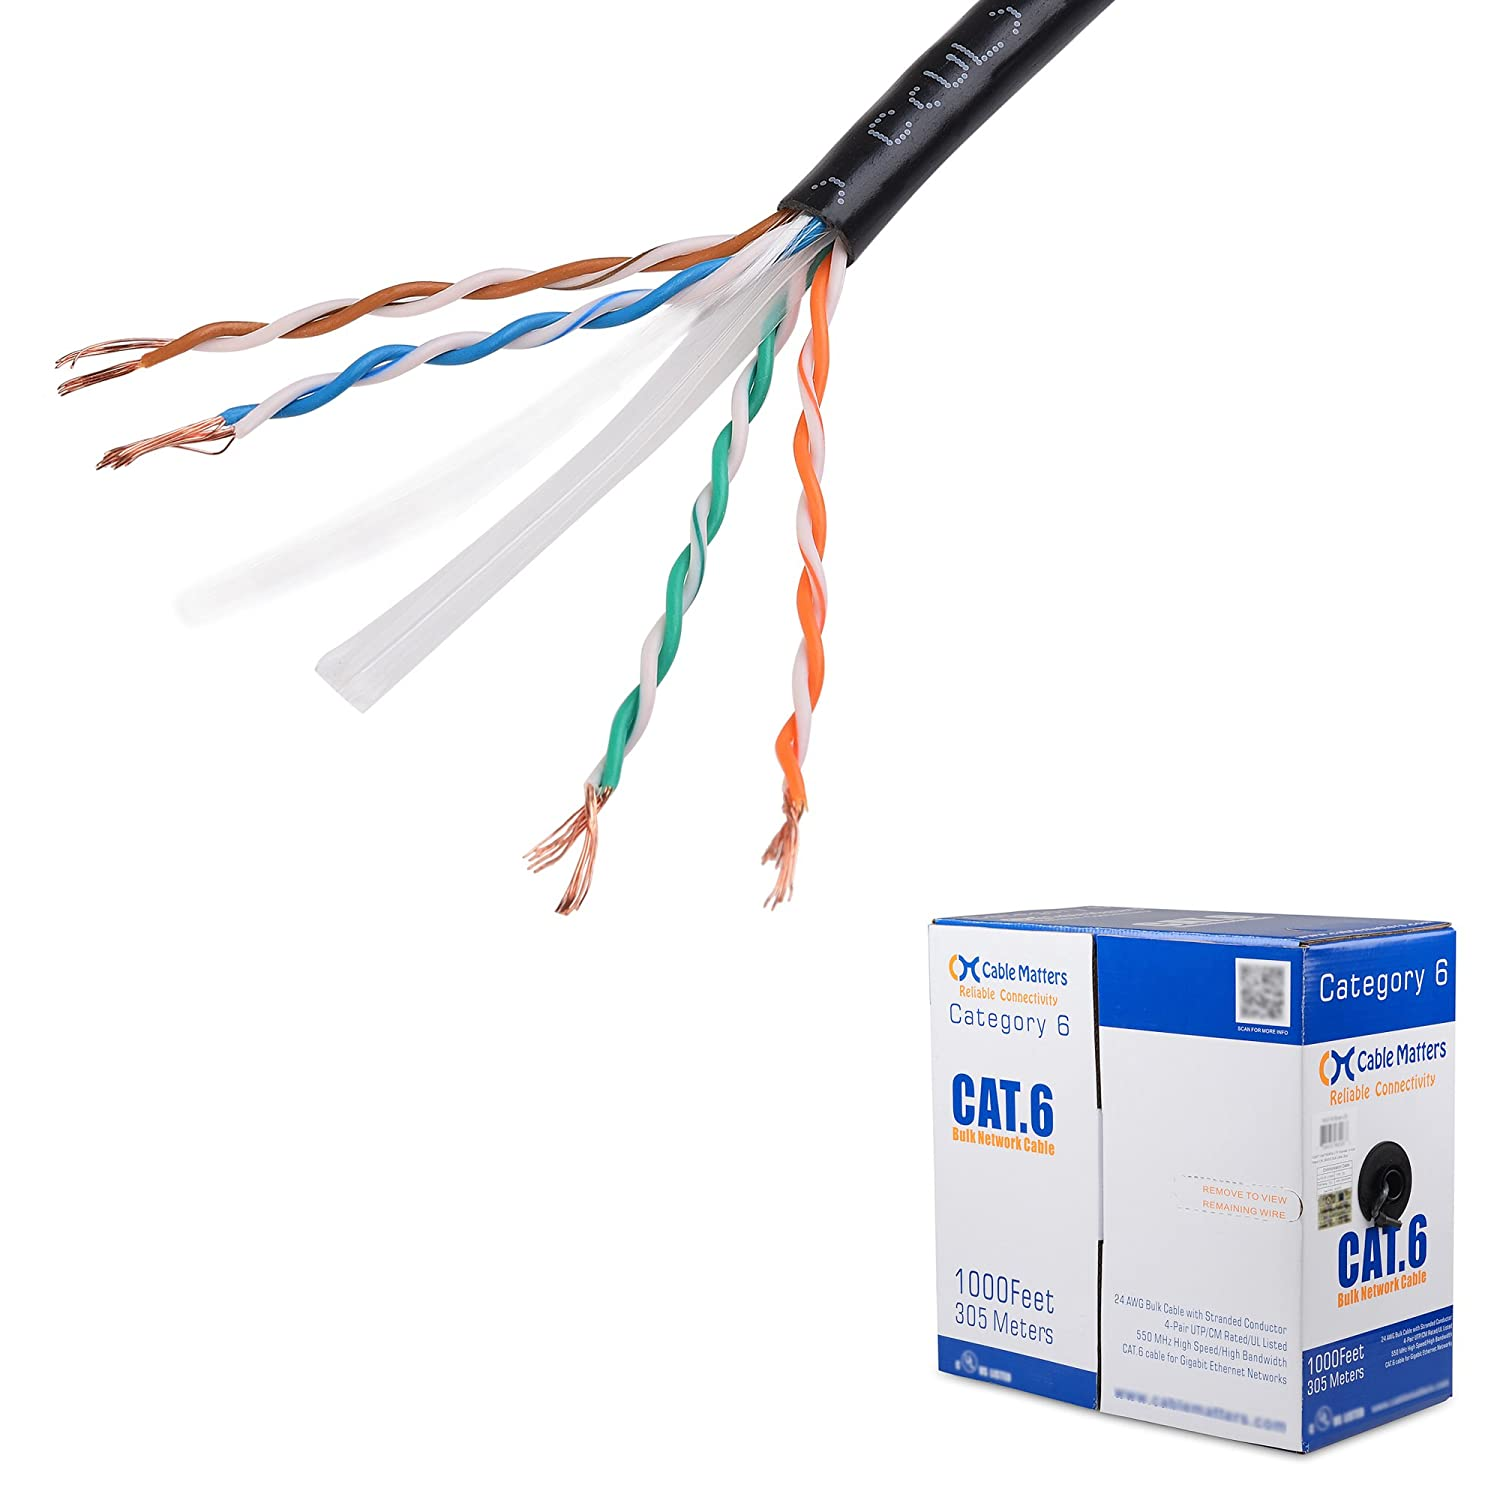 Ul Listed Cable Matters Stranded Bare Copper Cat 6 Cat6 Ethernet Wiring Bulk 1000 Feet In Blue Computers Accessories